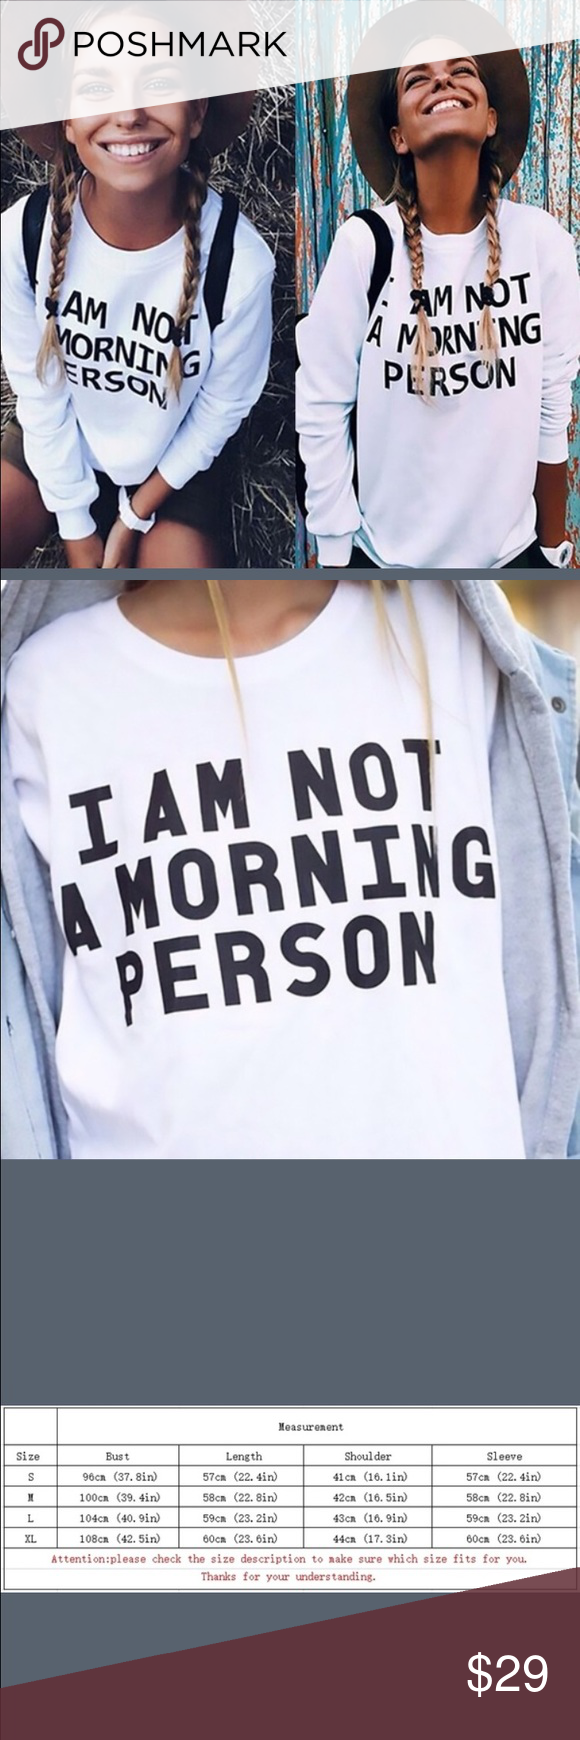 Sweatshirt-I am not a morning person new in pkg S White sweatshirt exactly as pictured. I am not a morning person Black writing. Would make a great Christmas  gift. Tops Sweatshirts & Hoodies